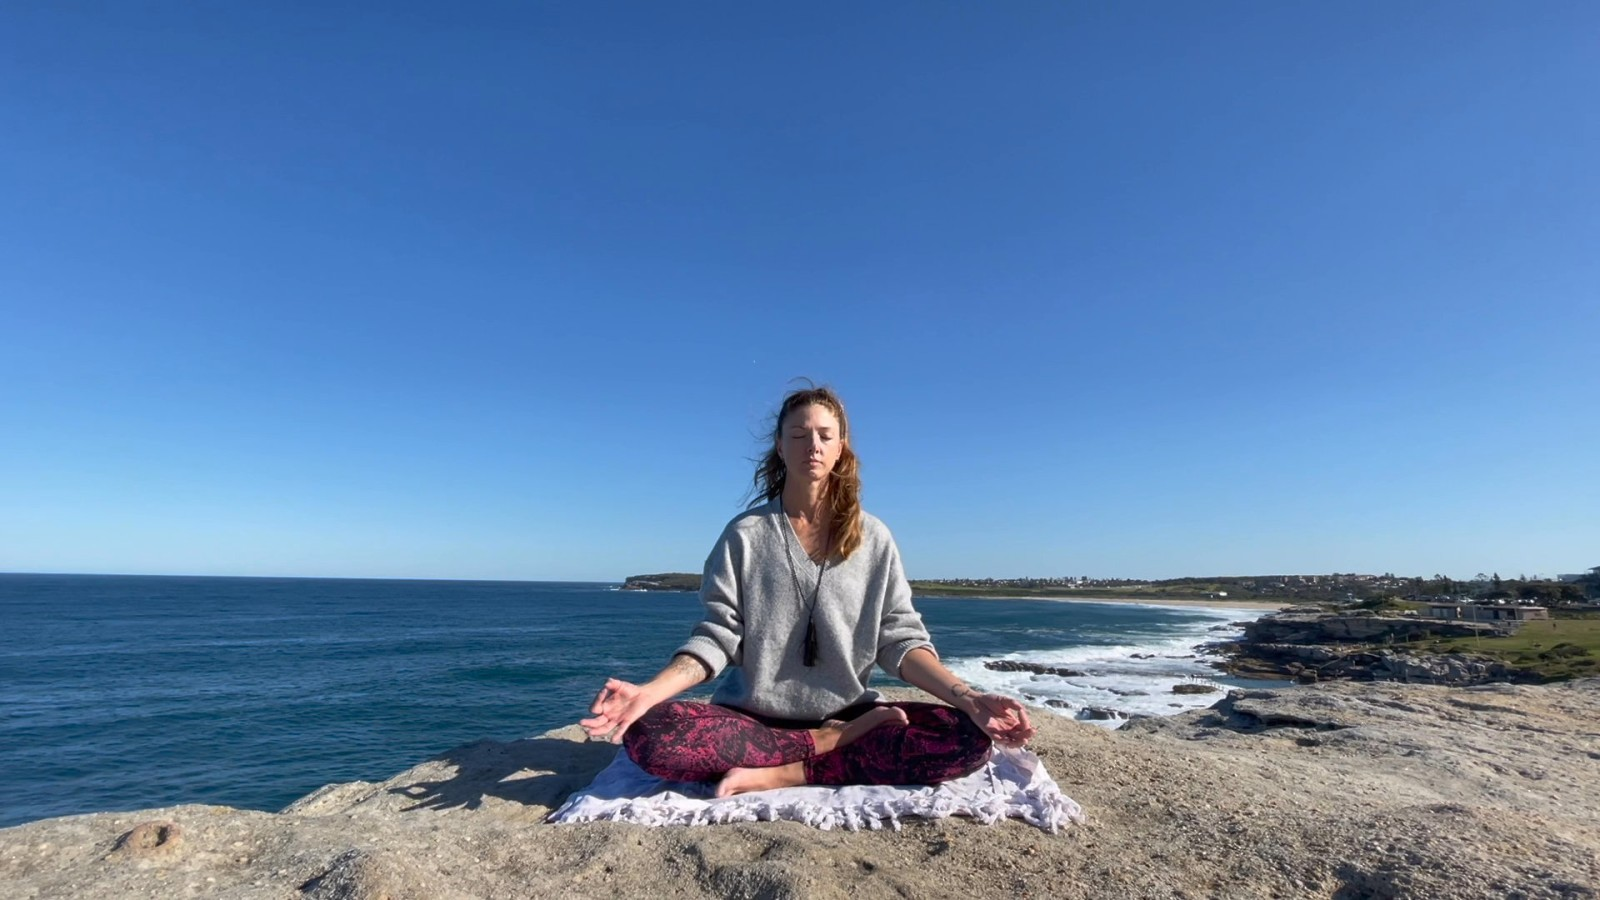 Meditation: Third Eye Chakra with Danielle Coulibaly